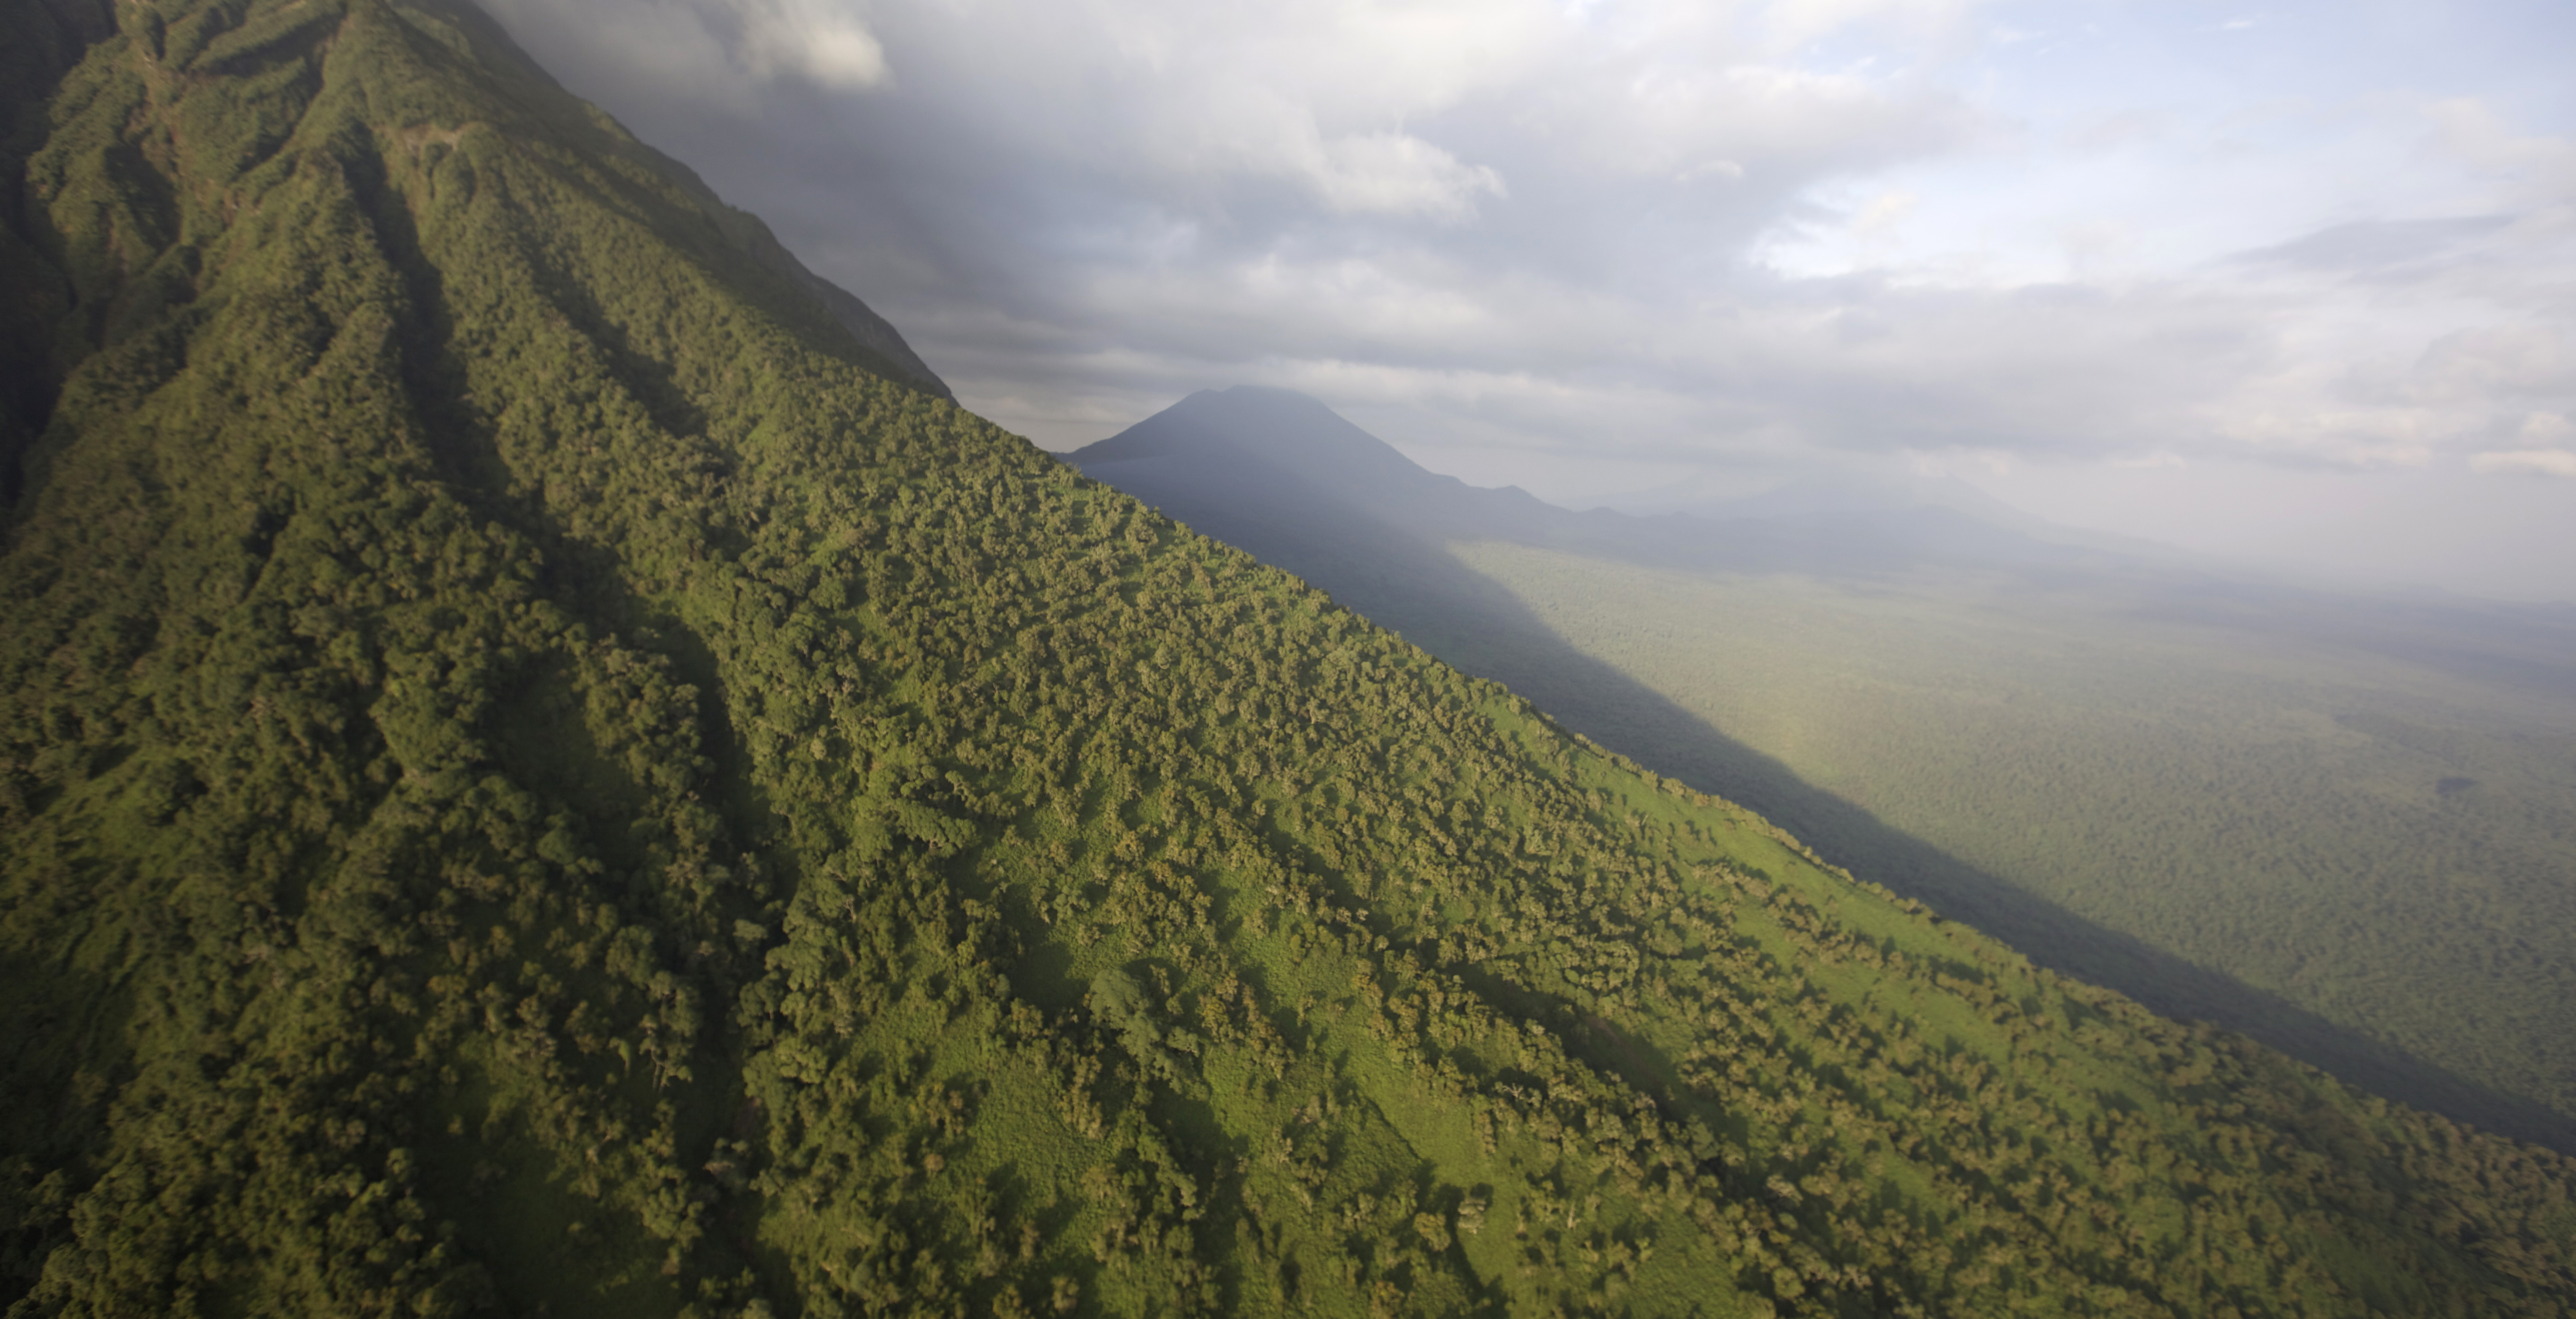 Aerial Shot of Virunga National Park by Tropic Air